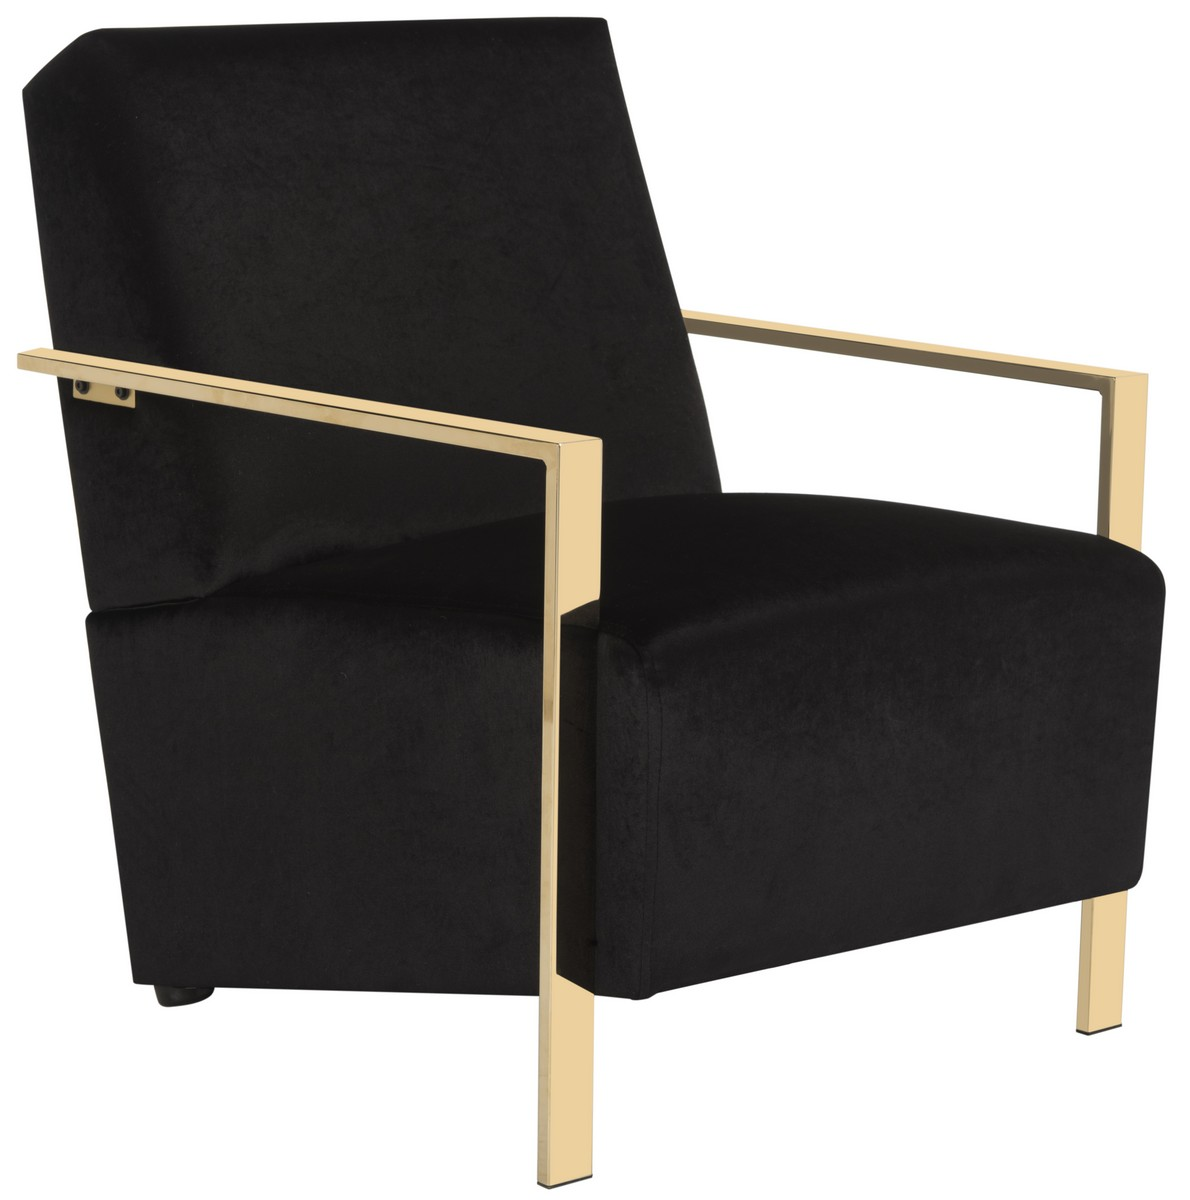 sleek and refined this sumptuous modern accent chair was inspired by the legendary home of a top los angeles interior designer crafted with luxe black